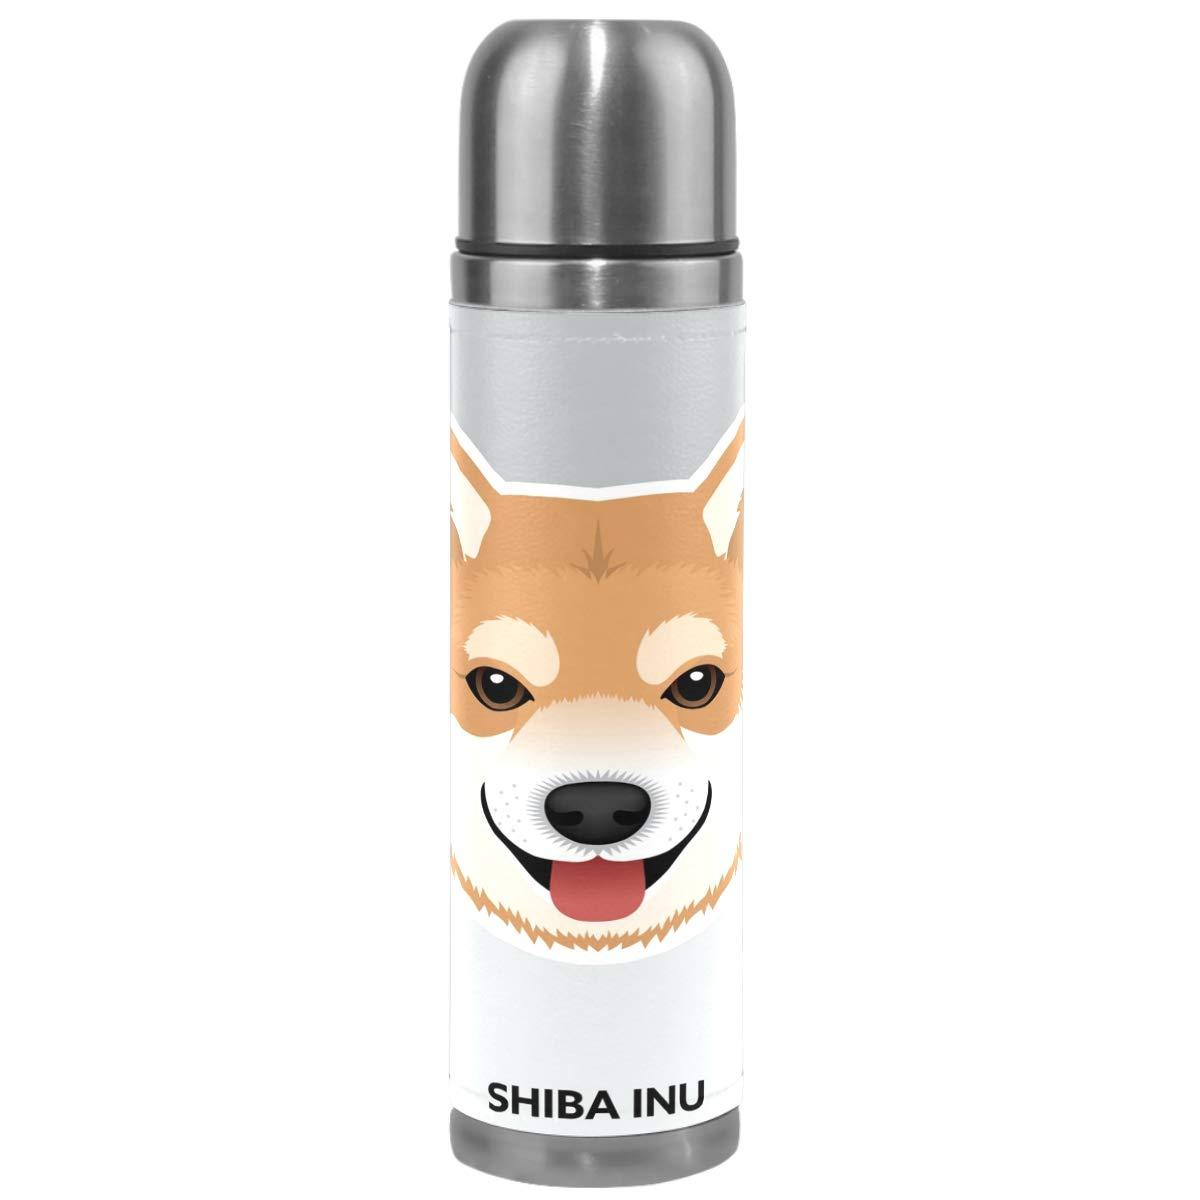 Wamika Cute Dog Pattern Vacuum Insulated Stainless Steel Water Bottle, Shiba Inu Puppy Funny Pets Animals Sports Coffee Travel Mug Thermos Cup Genuine Leather Cover Double Walled BPA Free 17 OZ